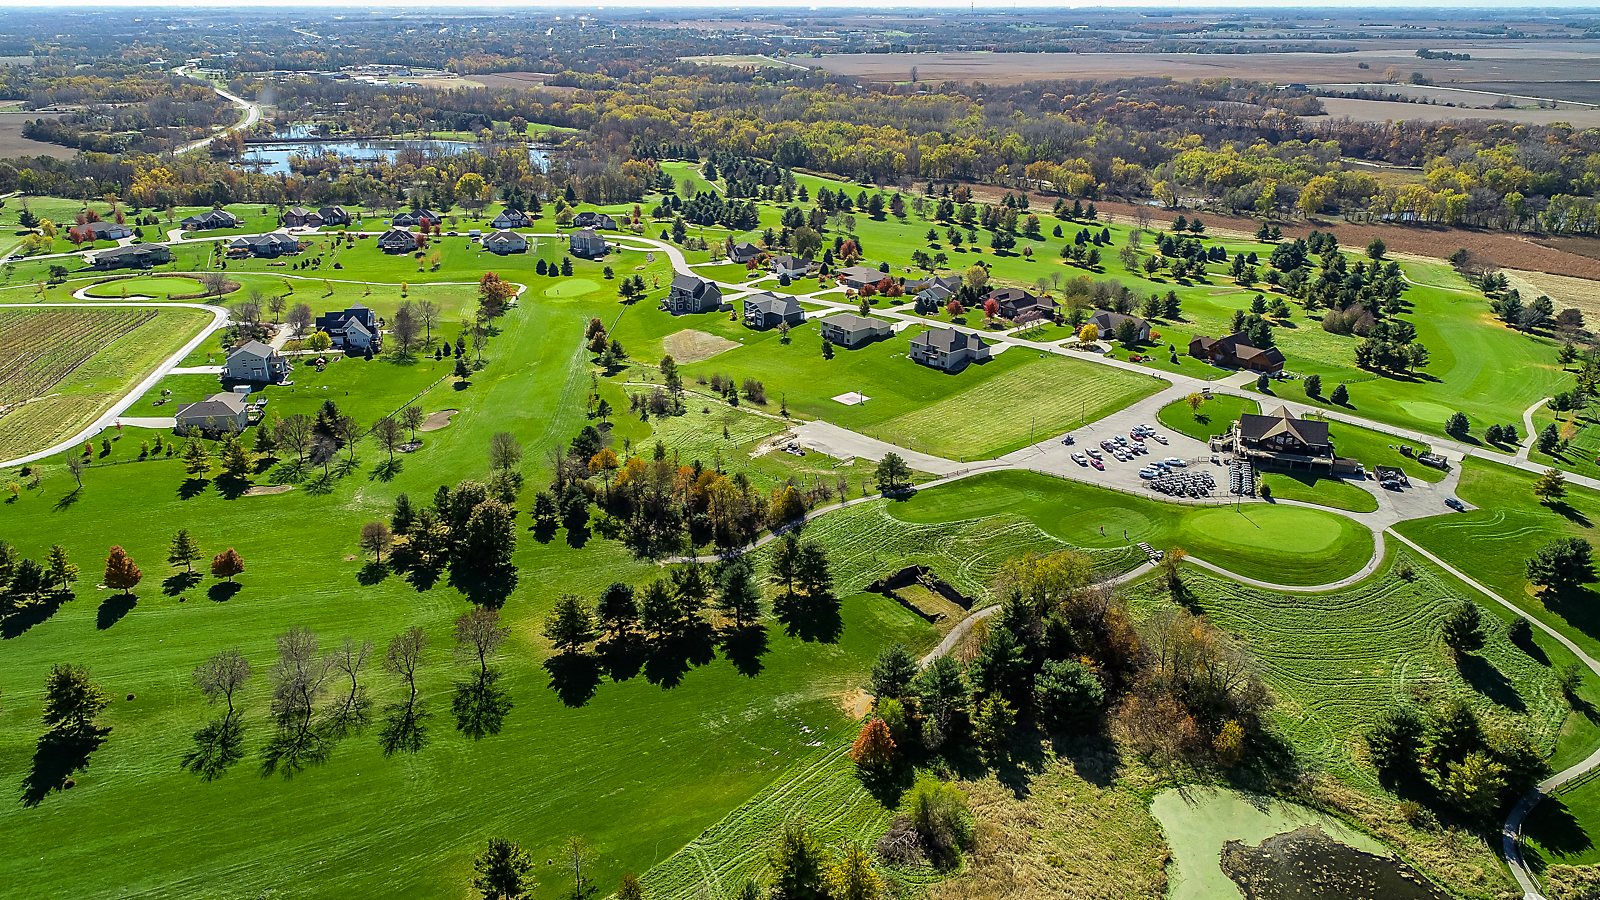 River Valley Golf, Adel (16 lots available) - MLS # 573668 Lot #332323 Valley View Trail, Adel, IA 50003$87,500More Details